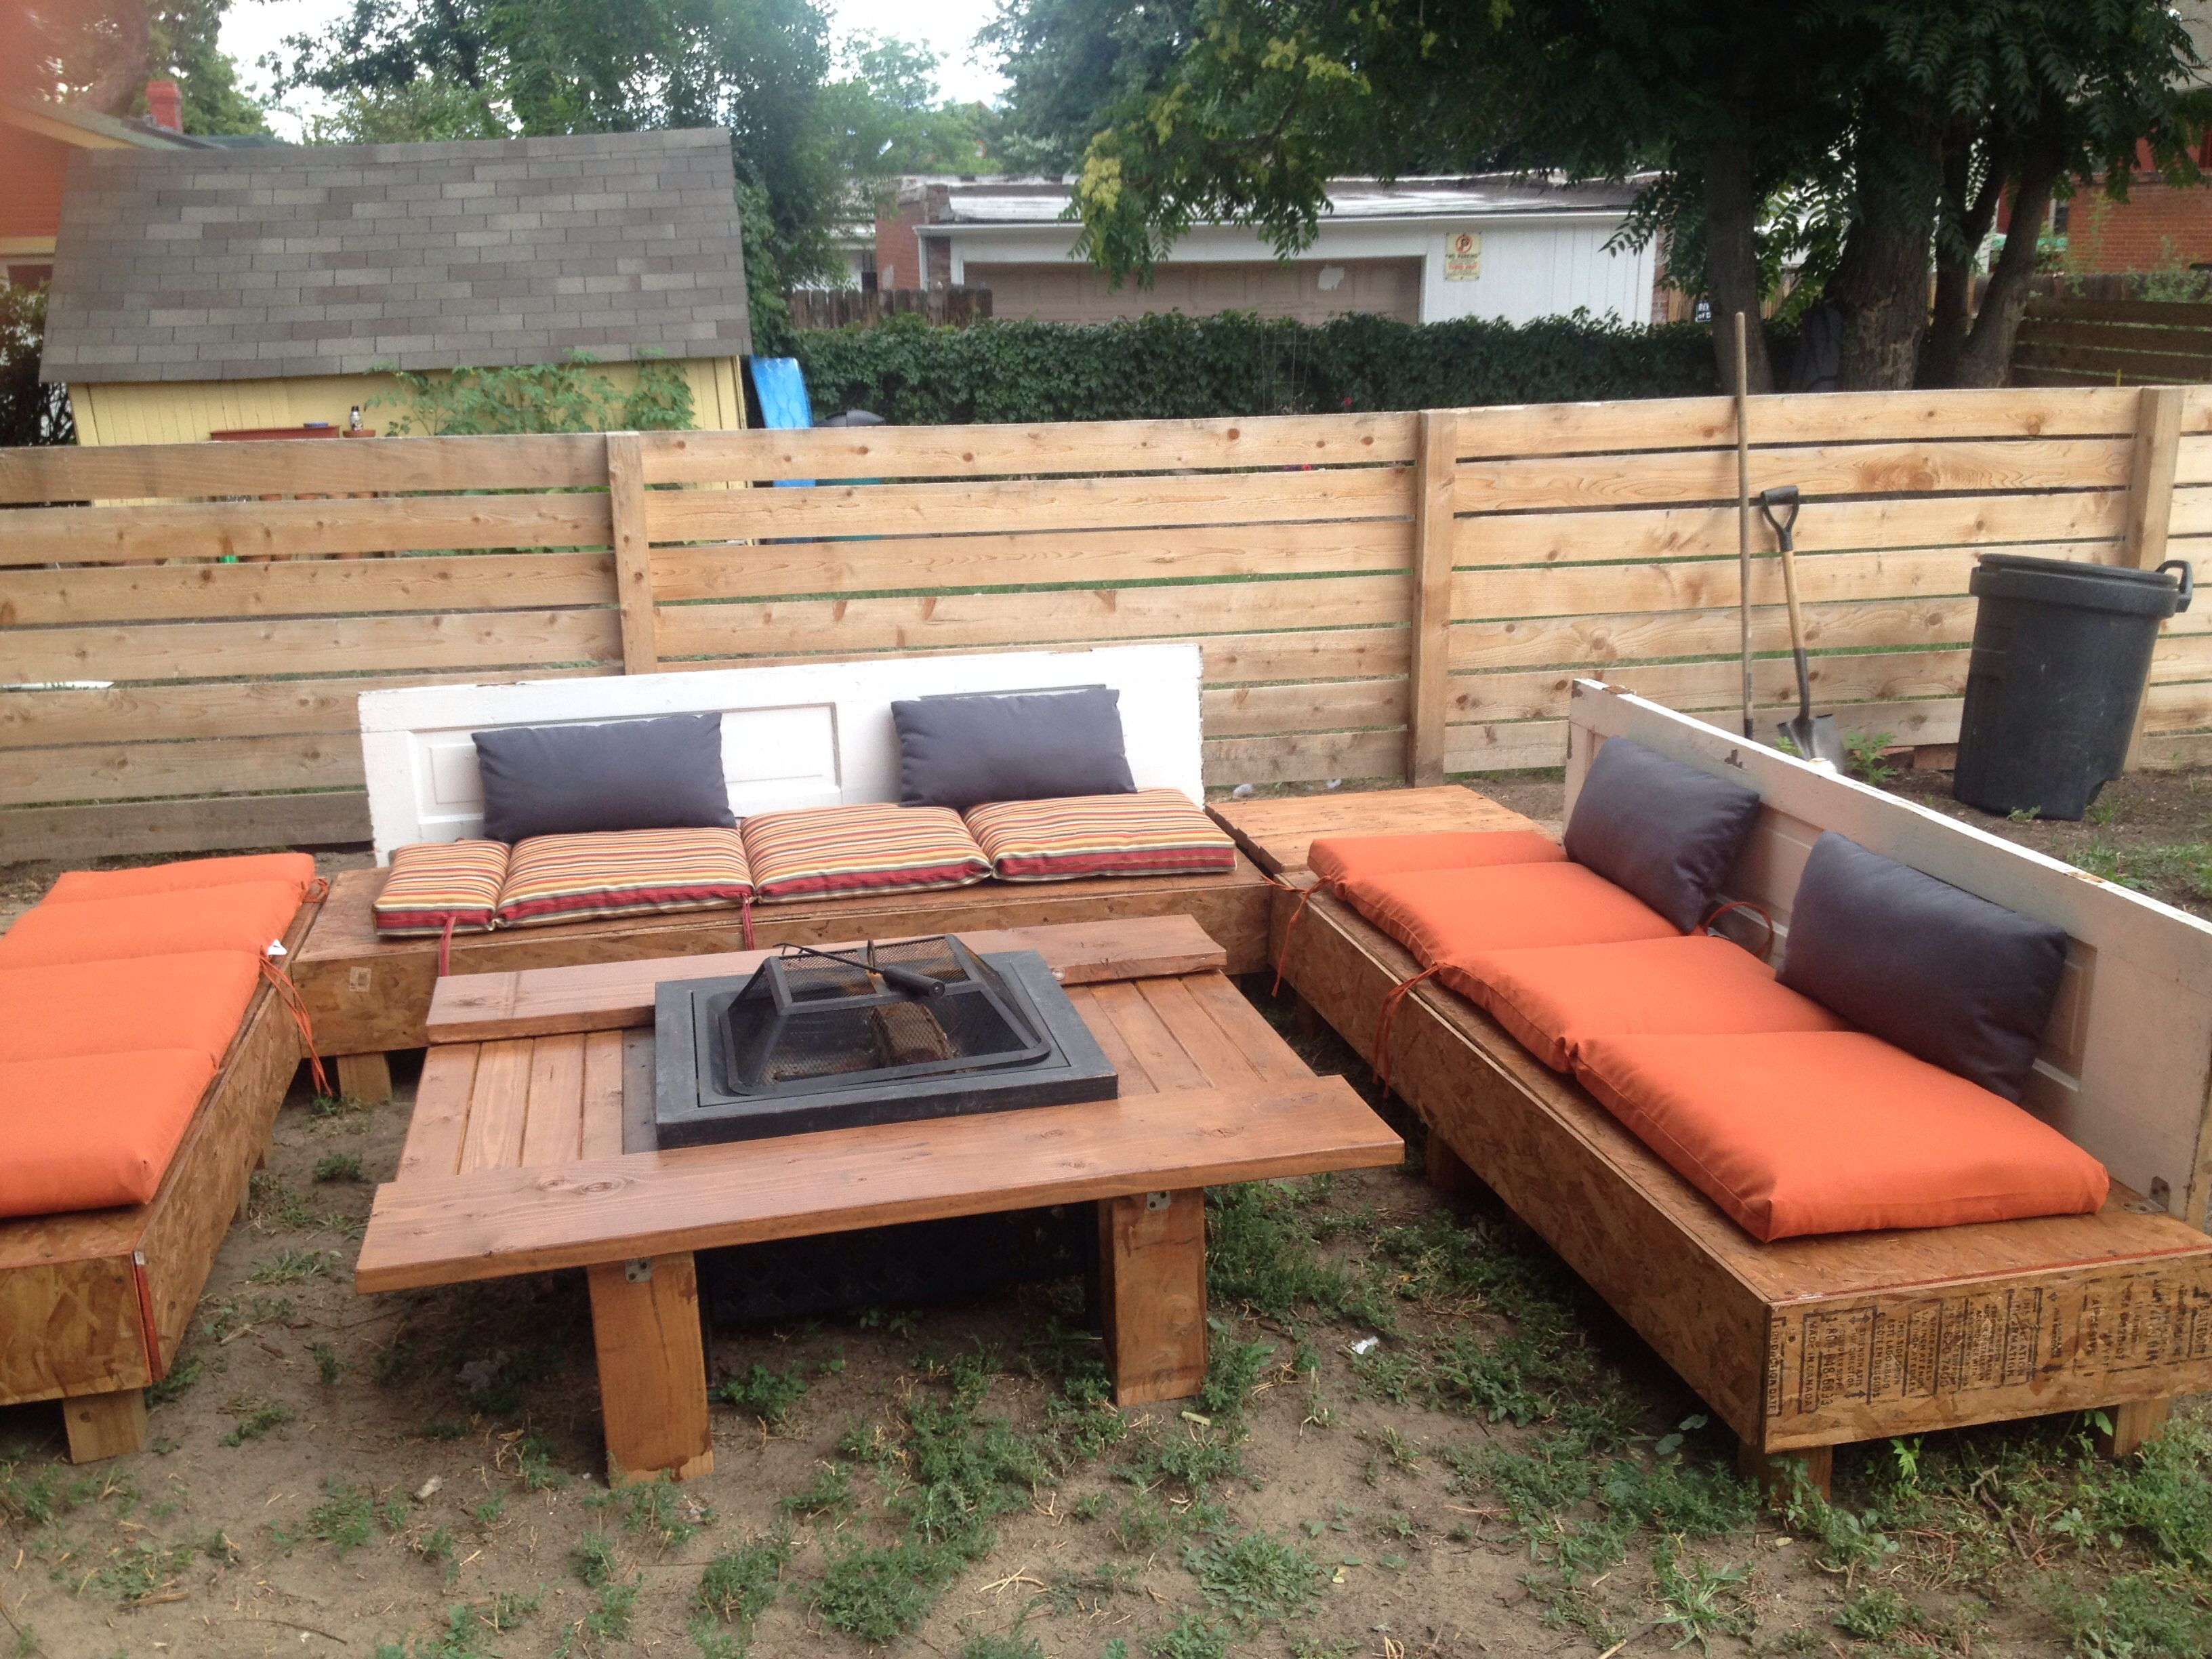 Outdoor couch and fire pit made from pallets the fire pit for Pallet fire pit